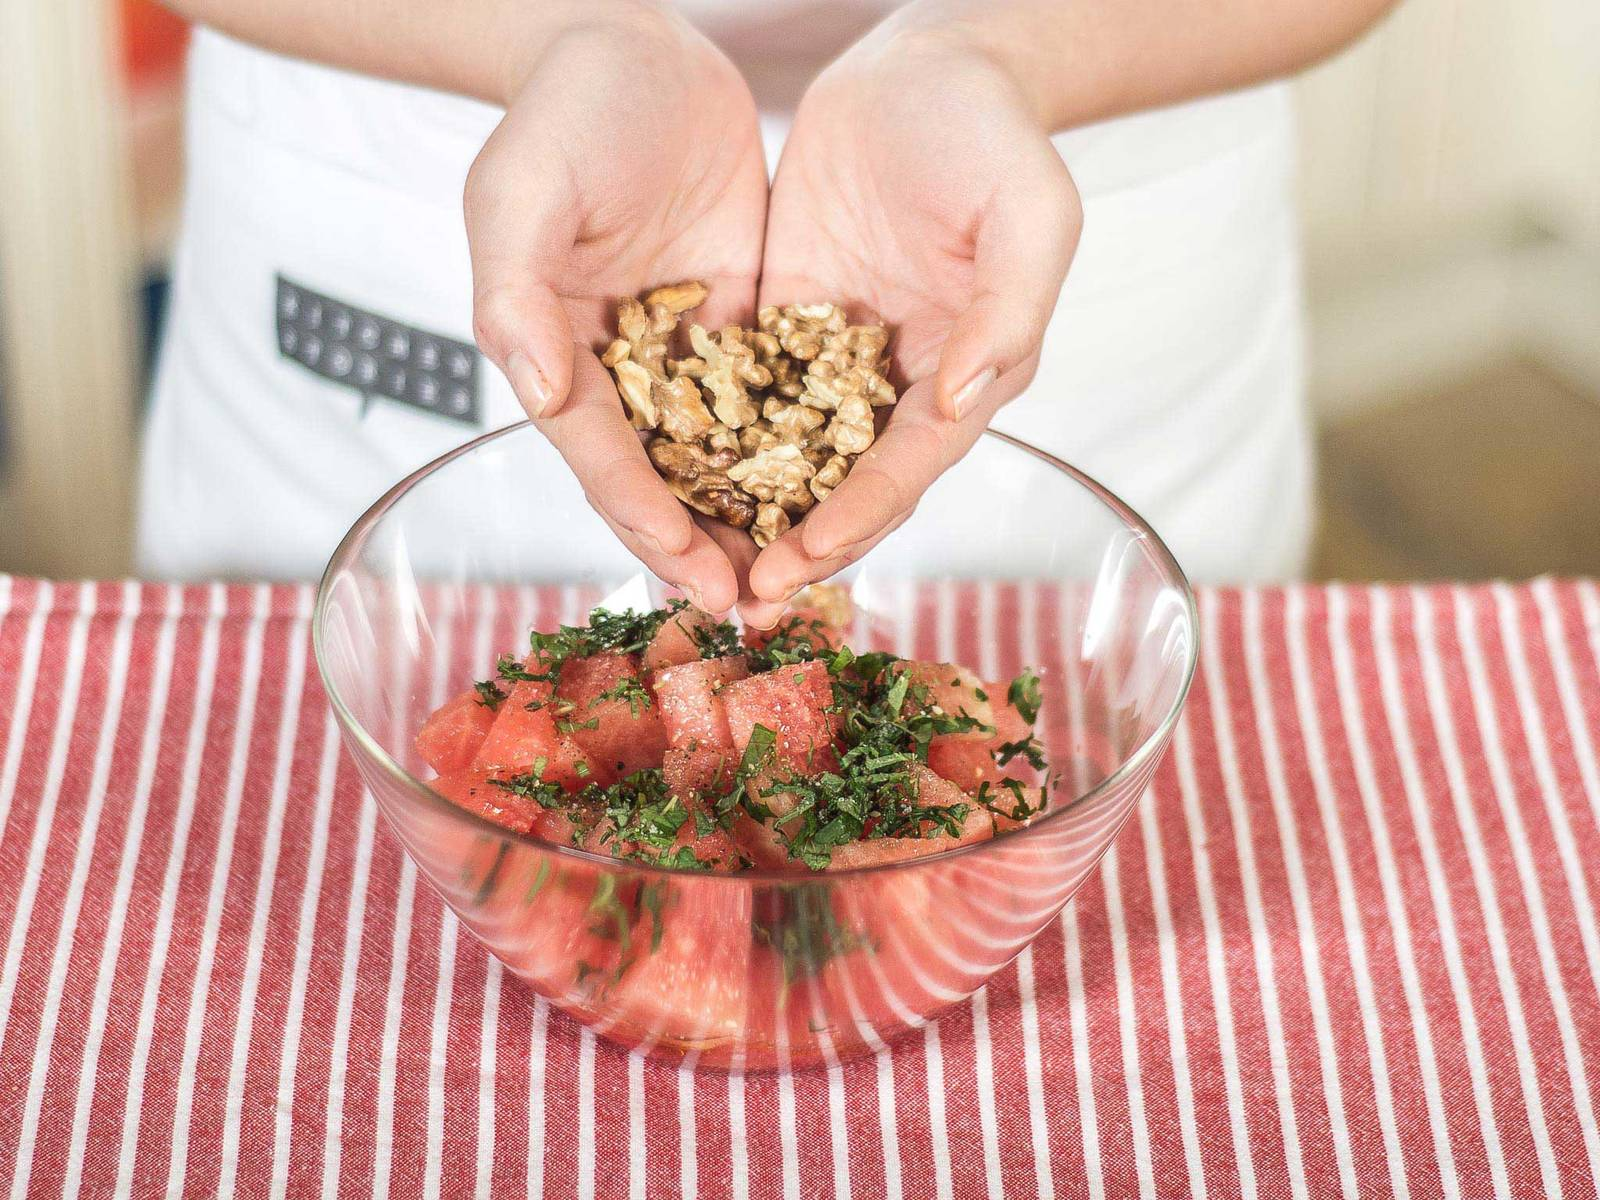 Gently break walnuts apart by hand and add to the water melon.